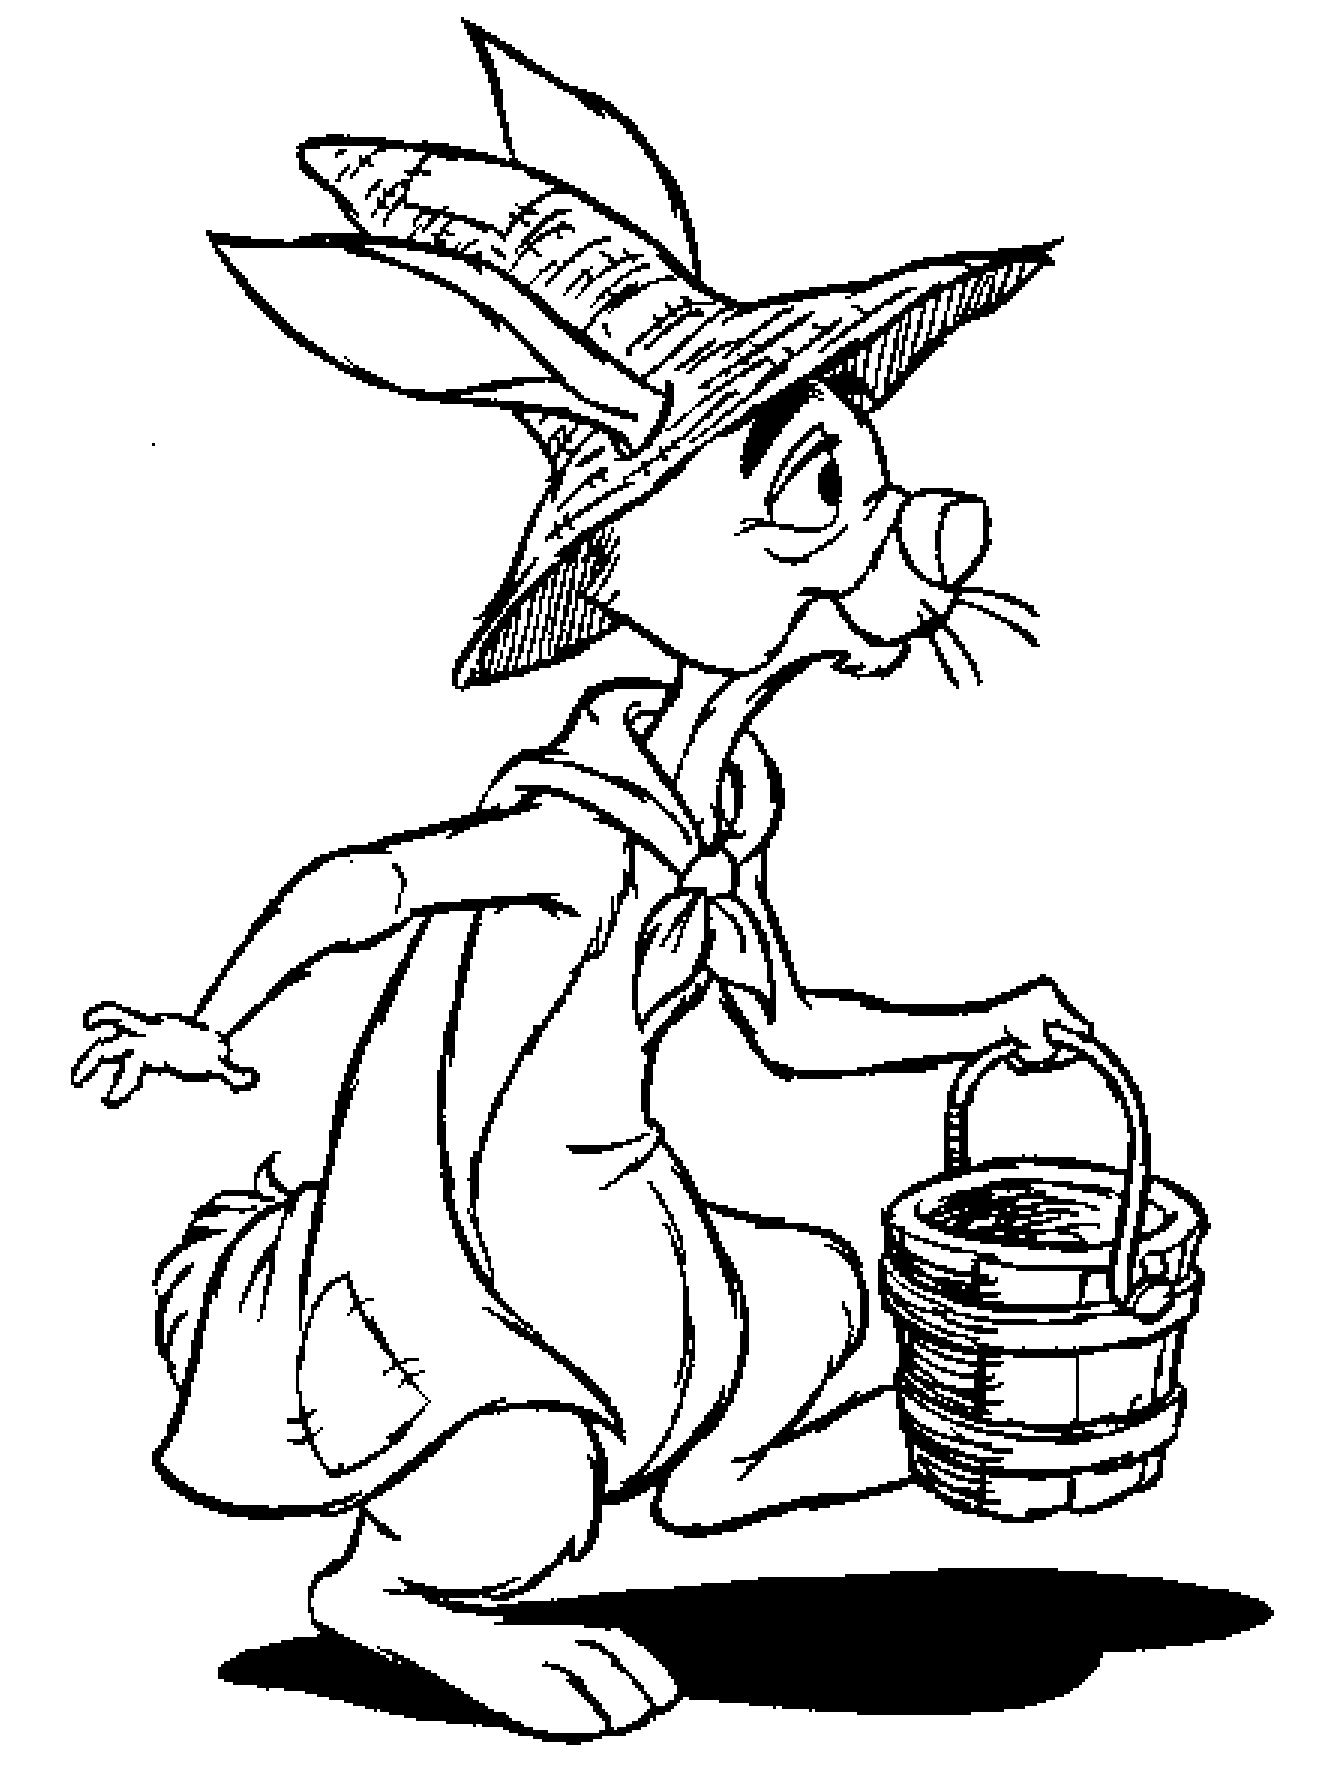 Winnie The Pooh And Rabbit Coloring Pages - Coloring Home